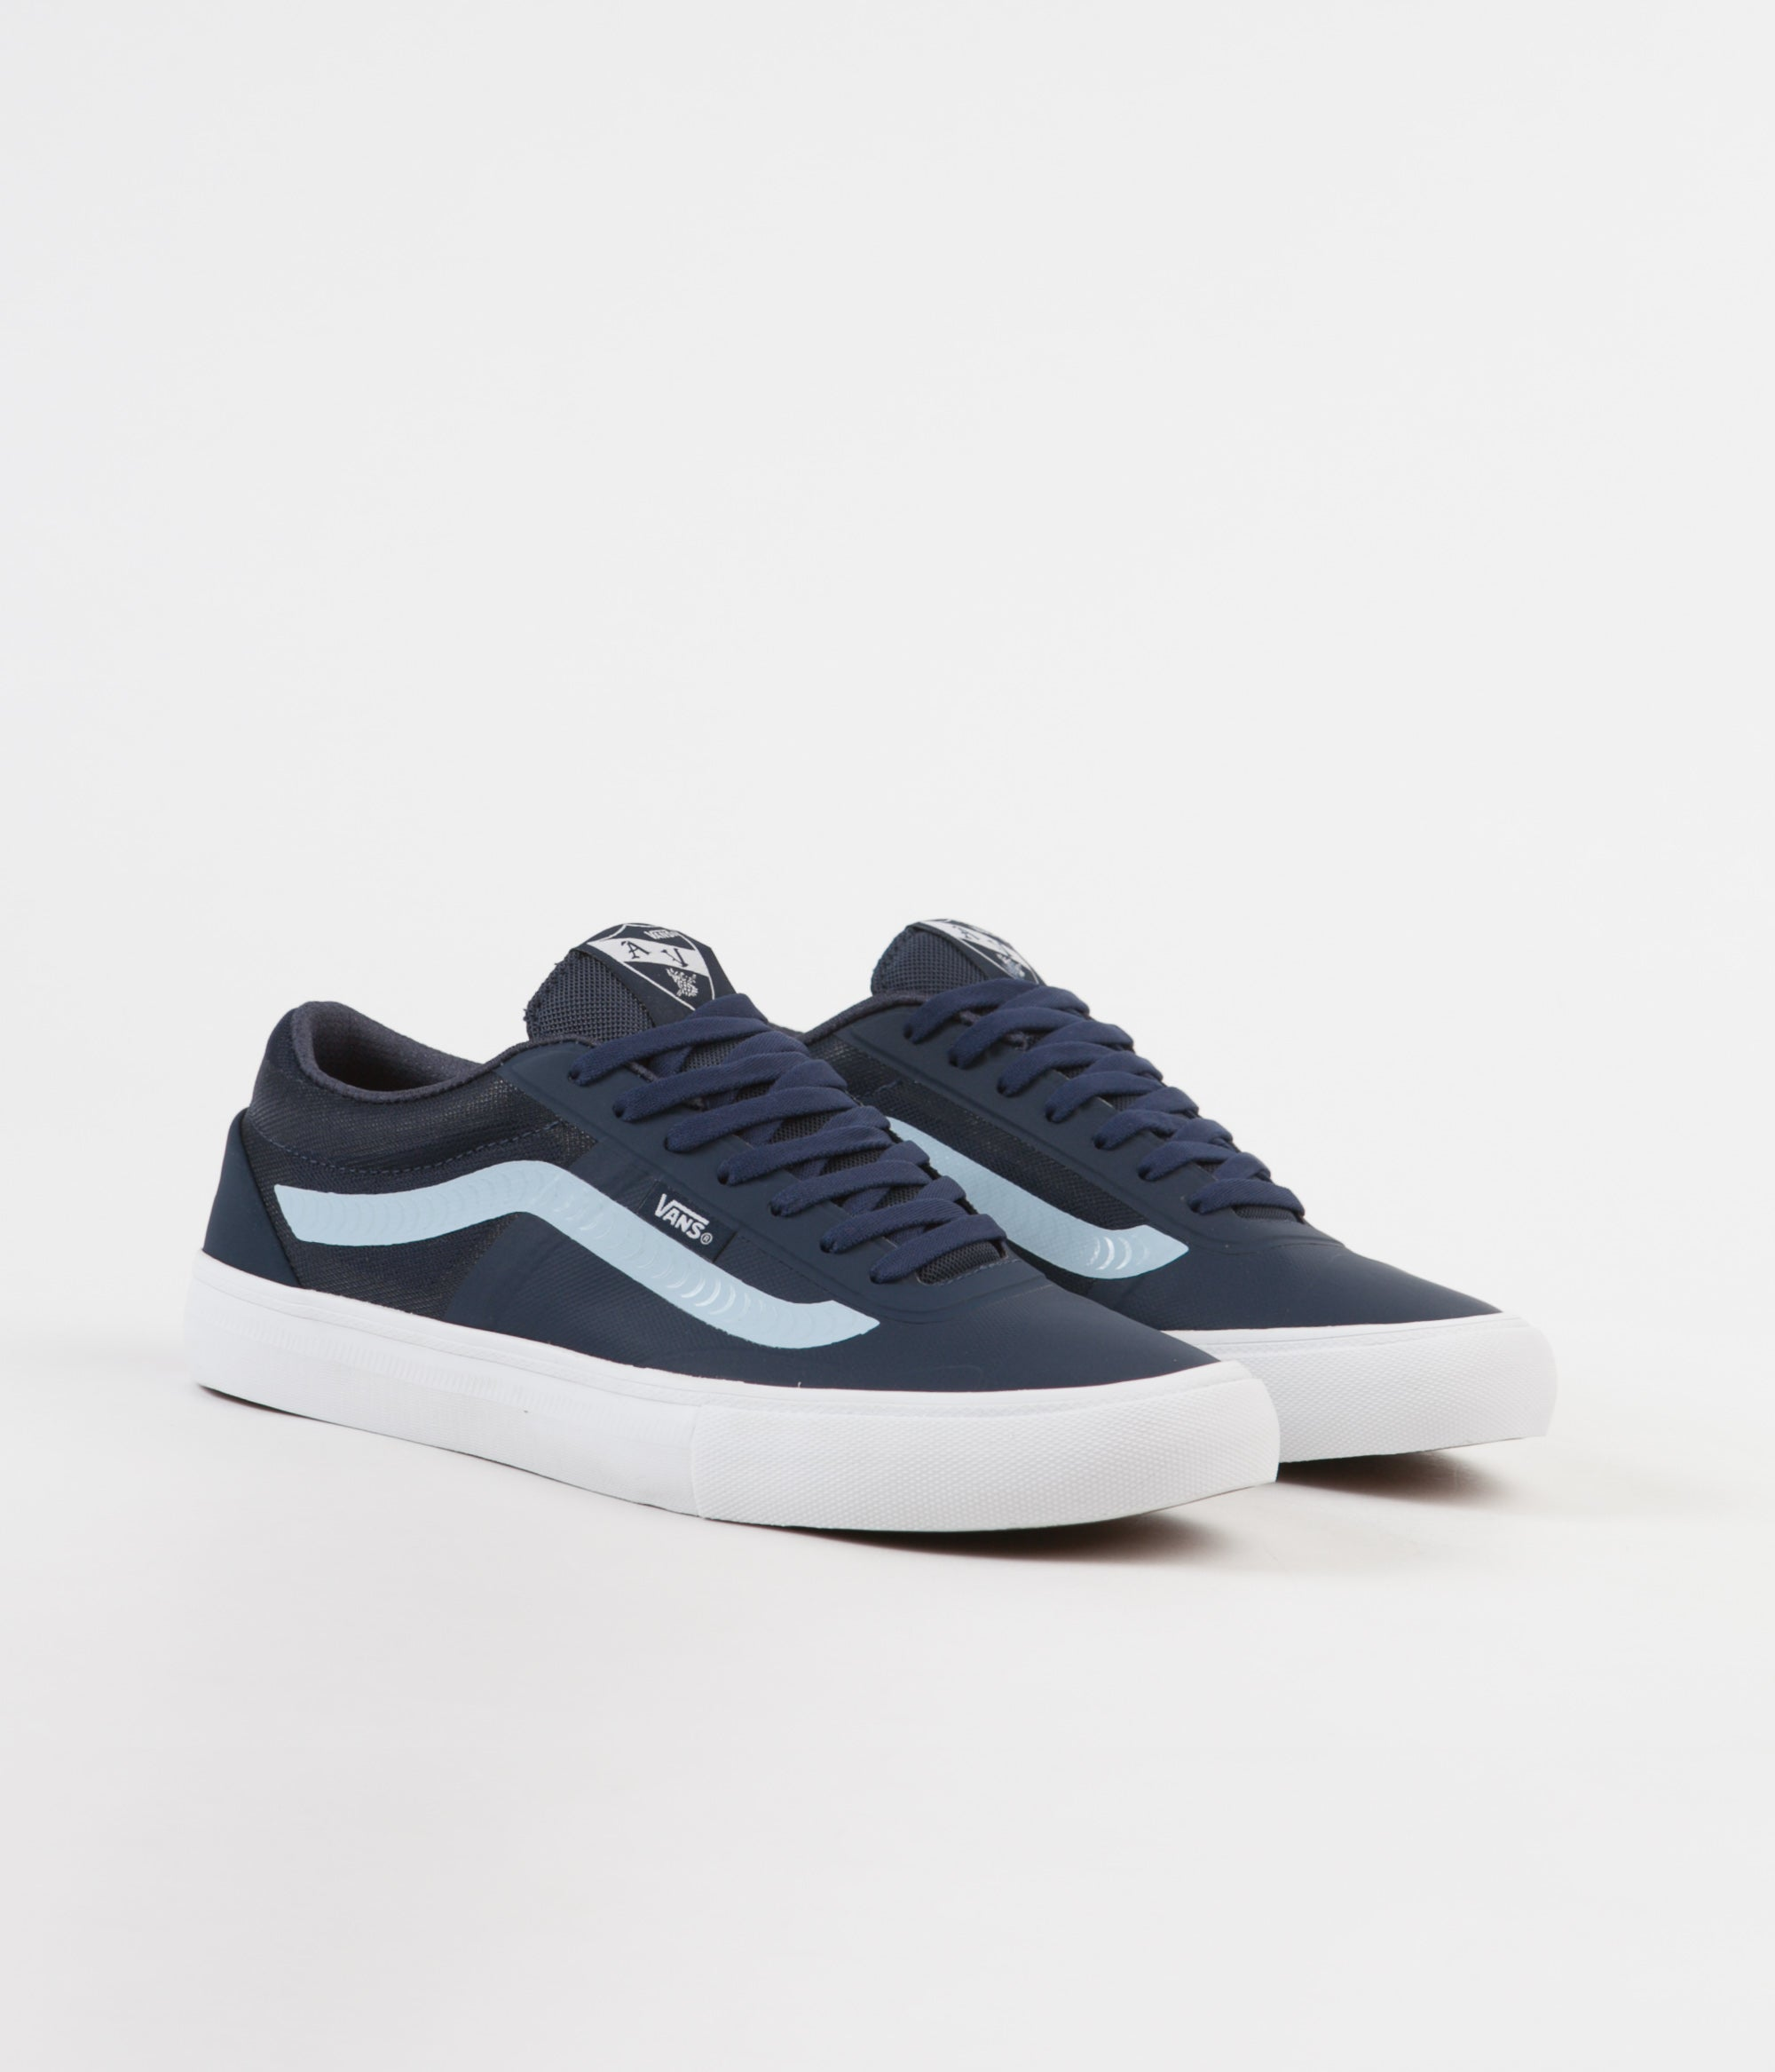 b3b4e5e8cd77df ... Vans x Spitfire AV Rapidweld Pro Lite Shoes - Dress Blues ...